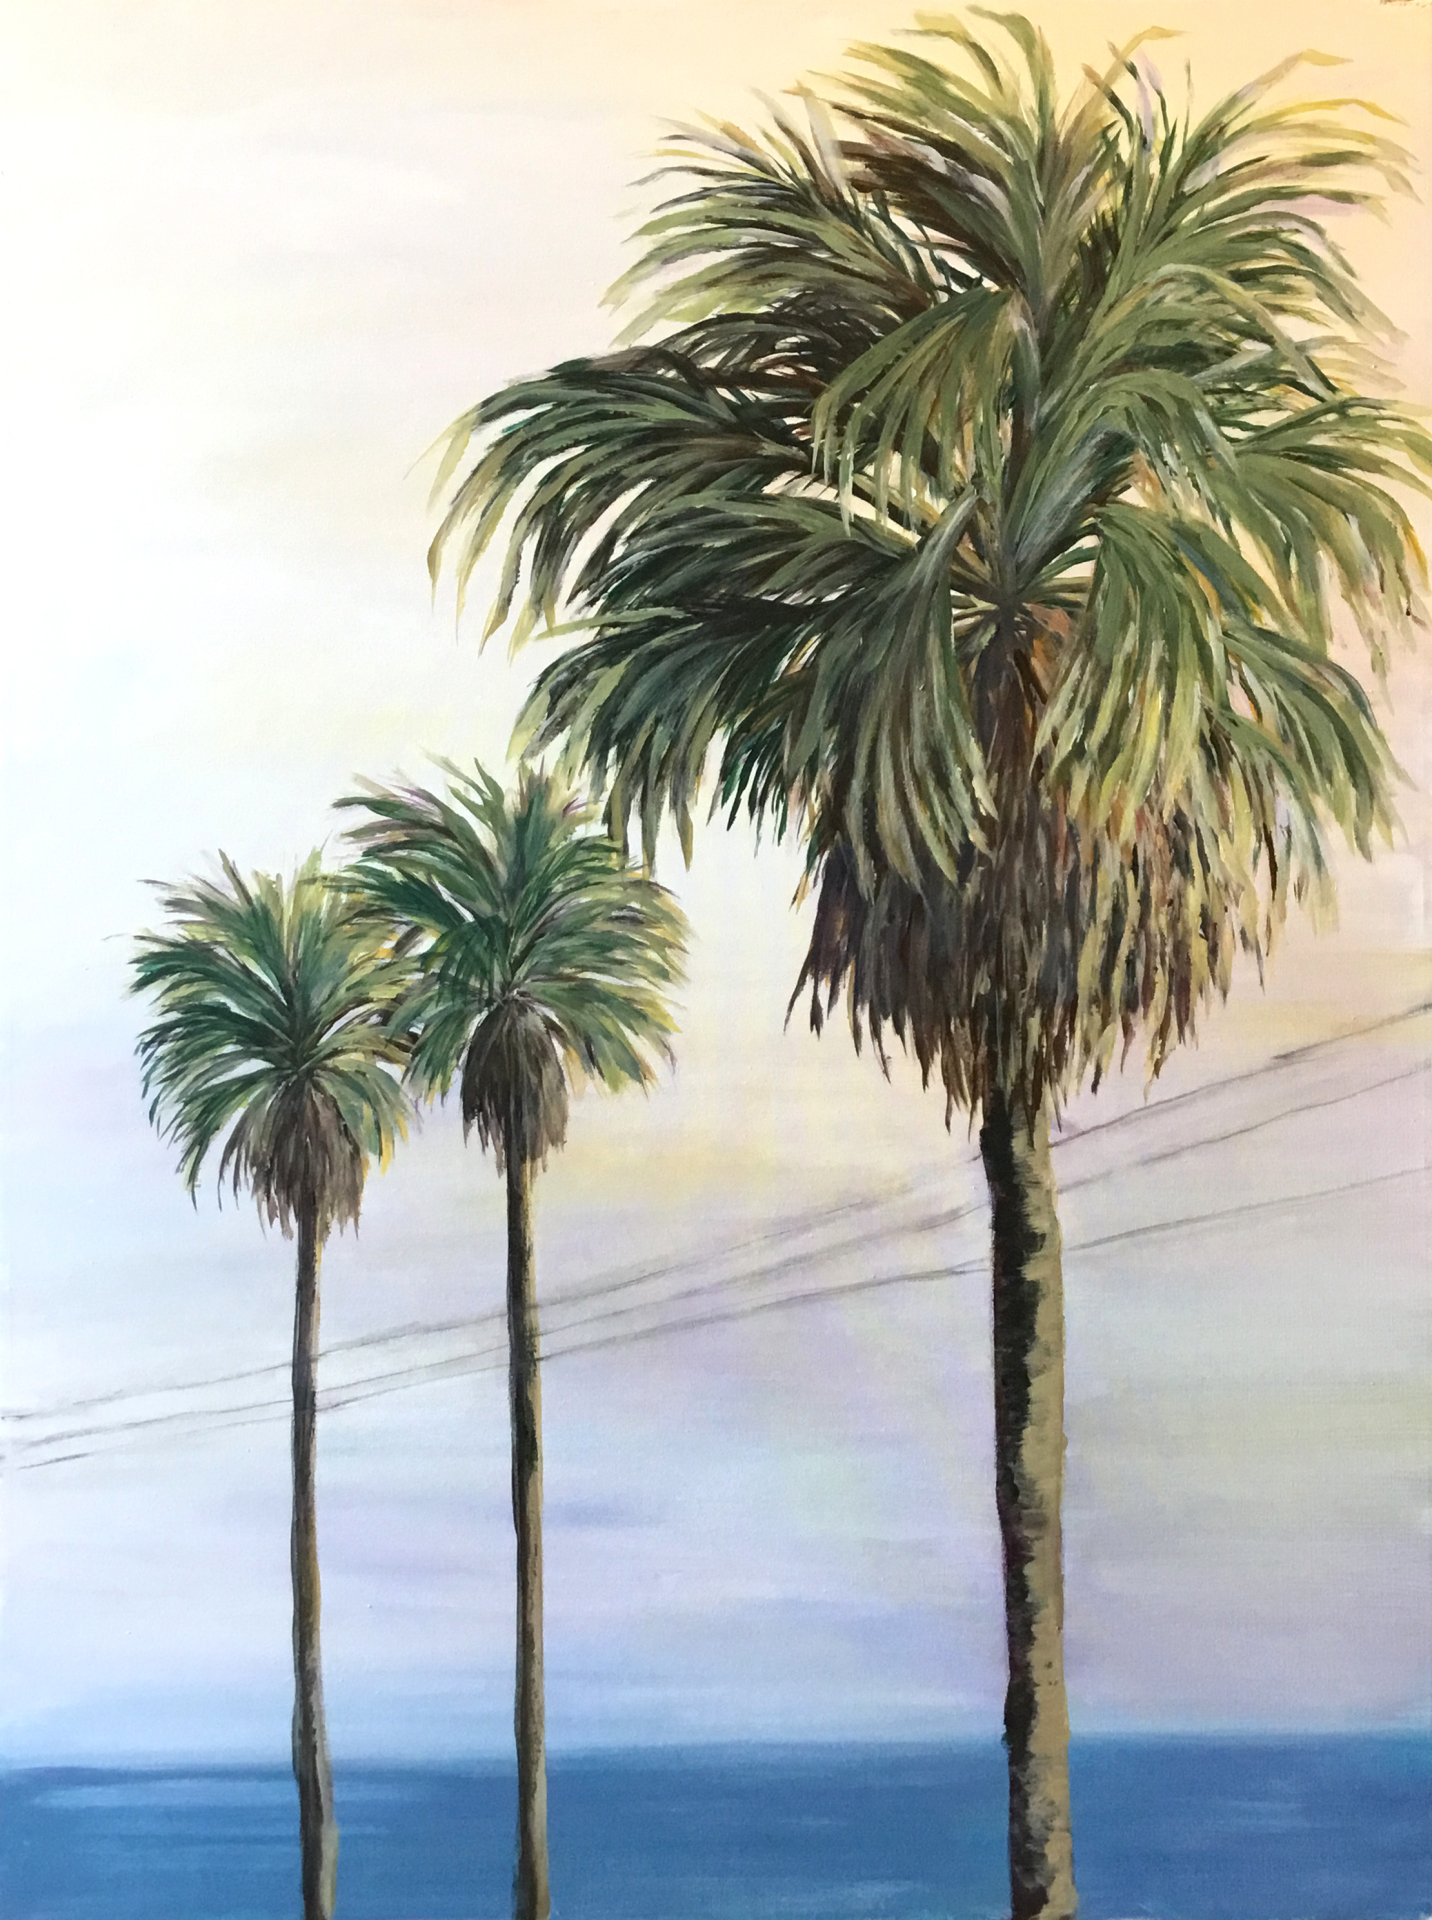 Acrylic, ocean, palm trees, California, beach, sunset,